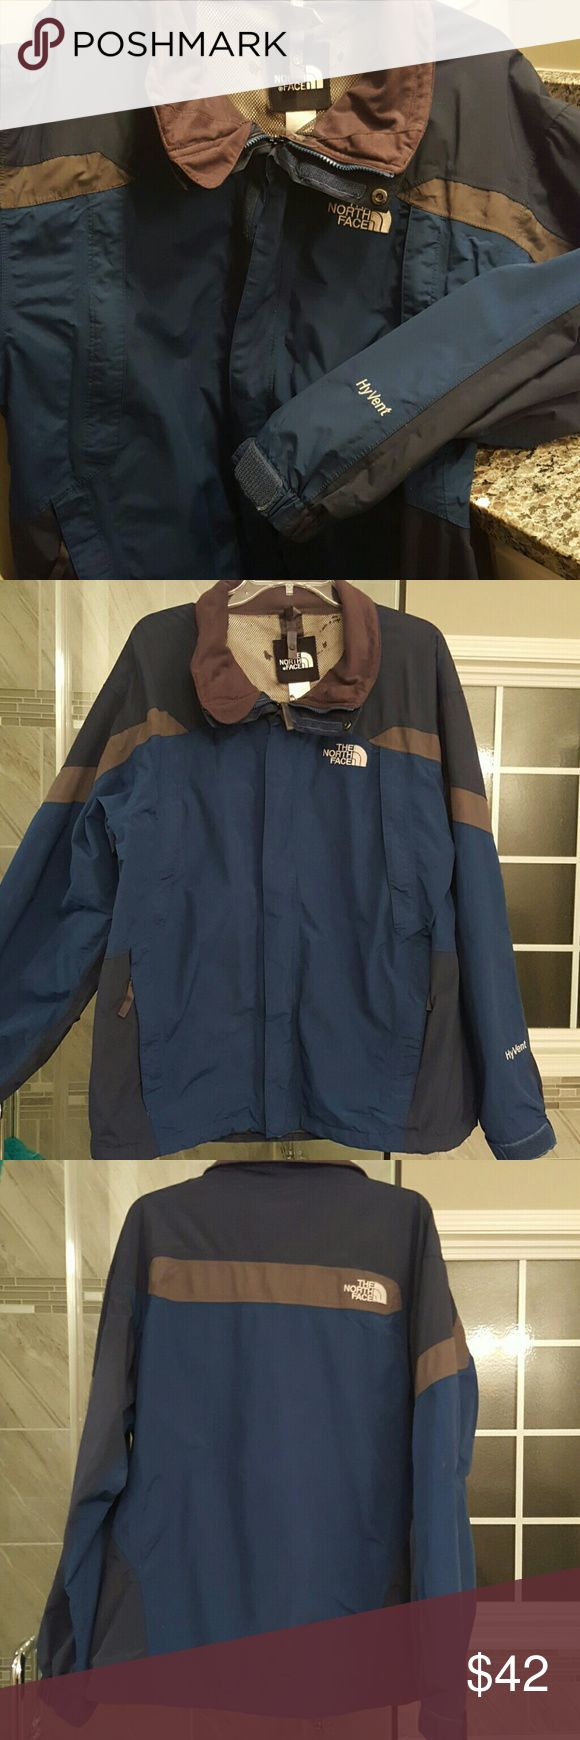 Men's North Face jacket HyVent royal blue, navy, and grey jacket. There are 4 pockets on the front. It's in great condition, but on the inside lining there is some wear as shown in 4th picture. North Face Jackets & Coats